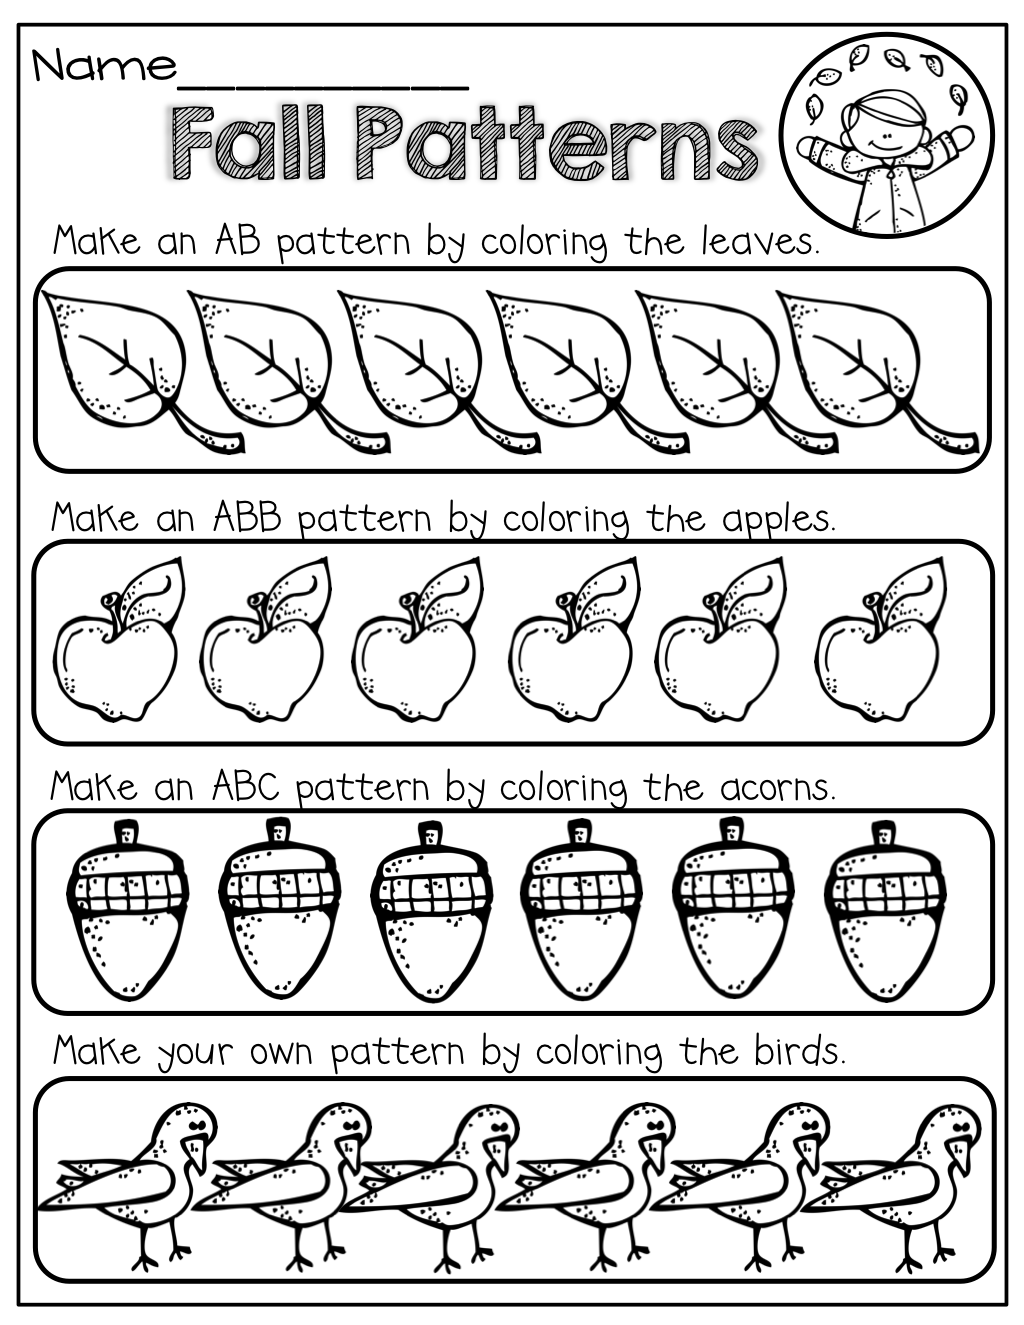 Color the fall patterns AB, ABB, ABC and make your own! | Math ...